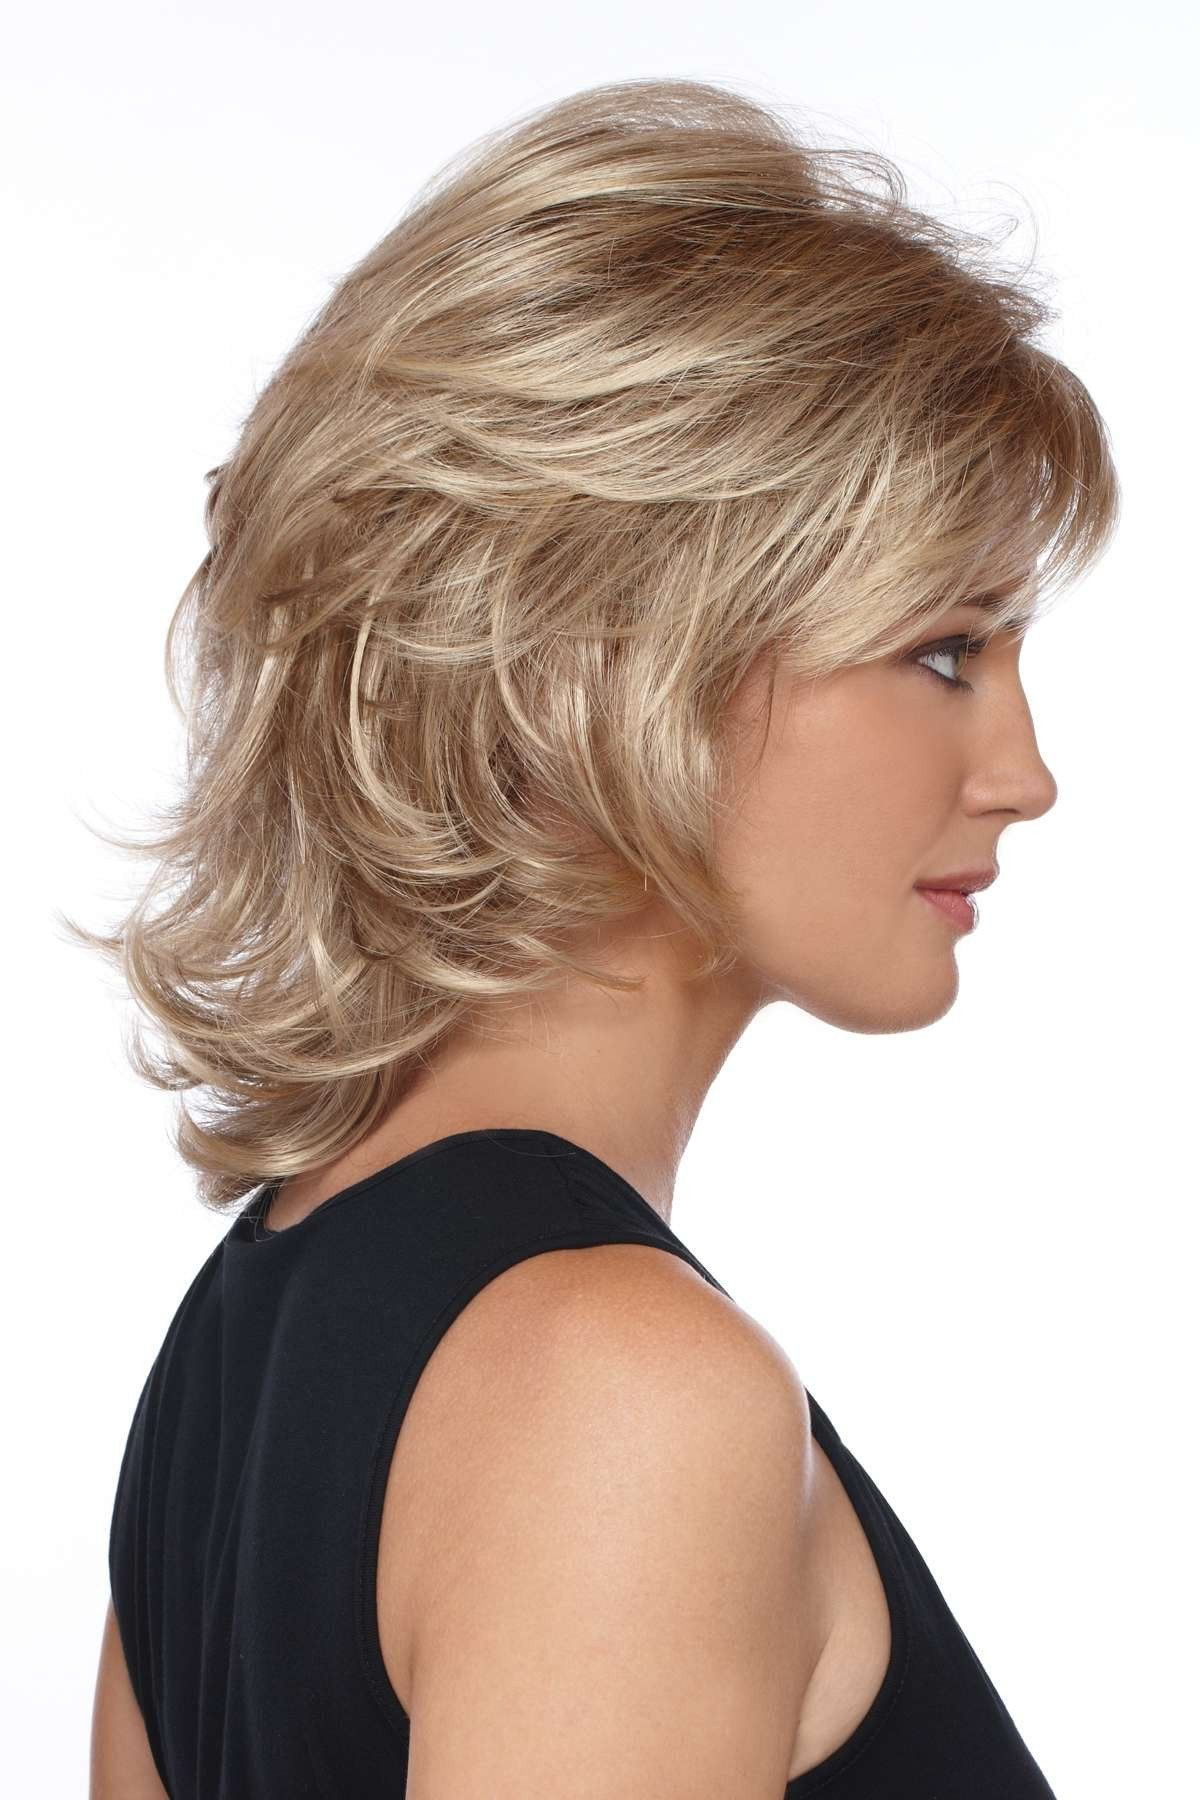 Coiffure Cheveux Courts Visage Rond Angela Synthetic Wig Traditional Cap Hair Pinterest